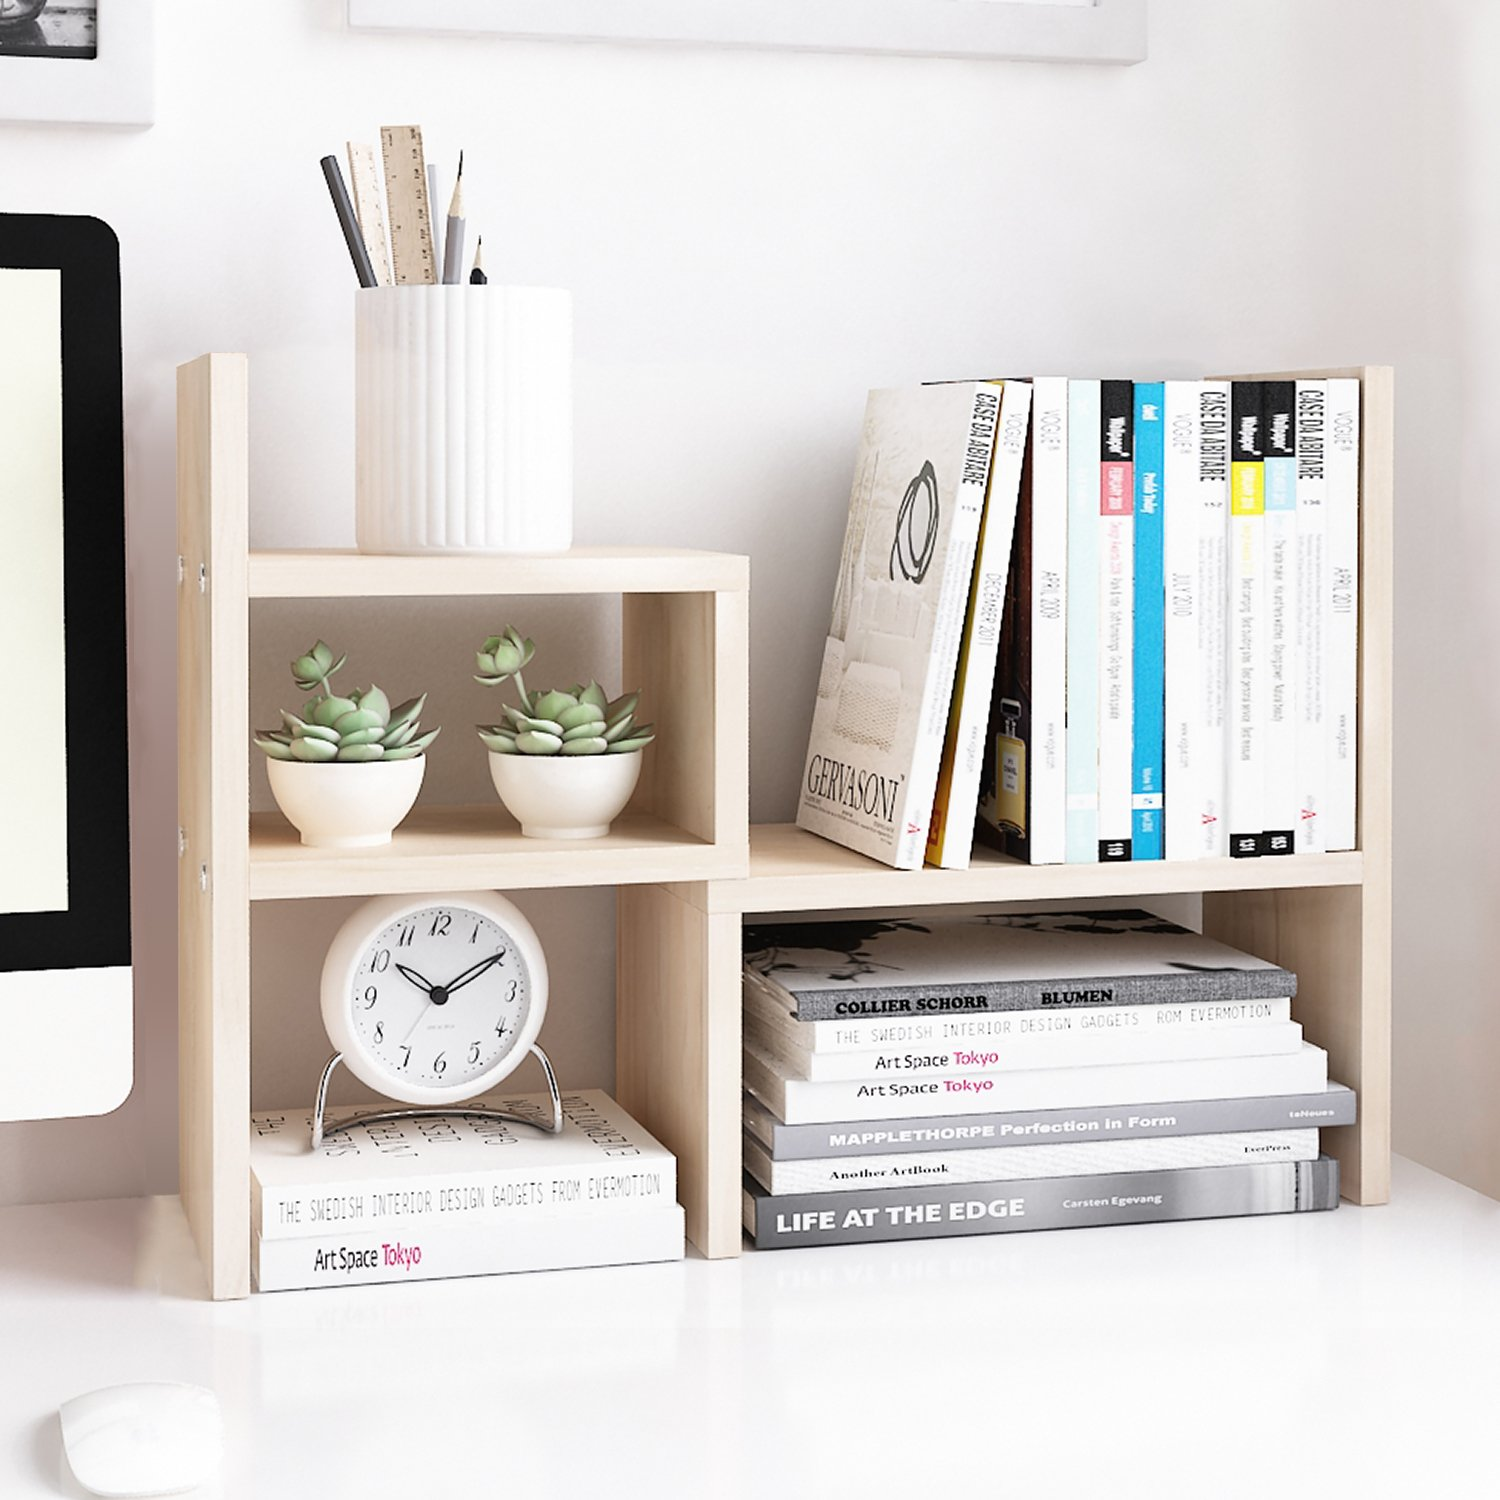 Jerry & Maggie - Desktop Organizer Office Storage Rack Adjustable Wood Display Shelf | Birthday Gifts - Toy - Home Decor | - Free Style Rotation Display - True Natural Stand Shelf White Wood Tone by Jerry & Maggie